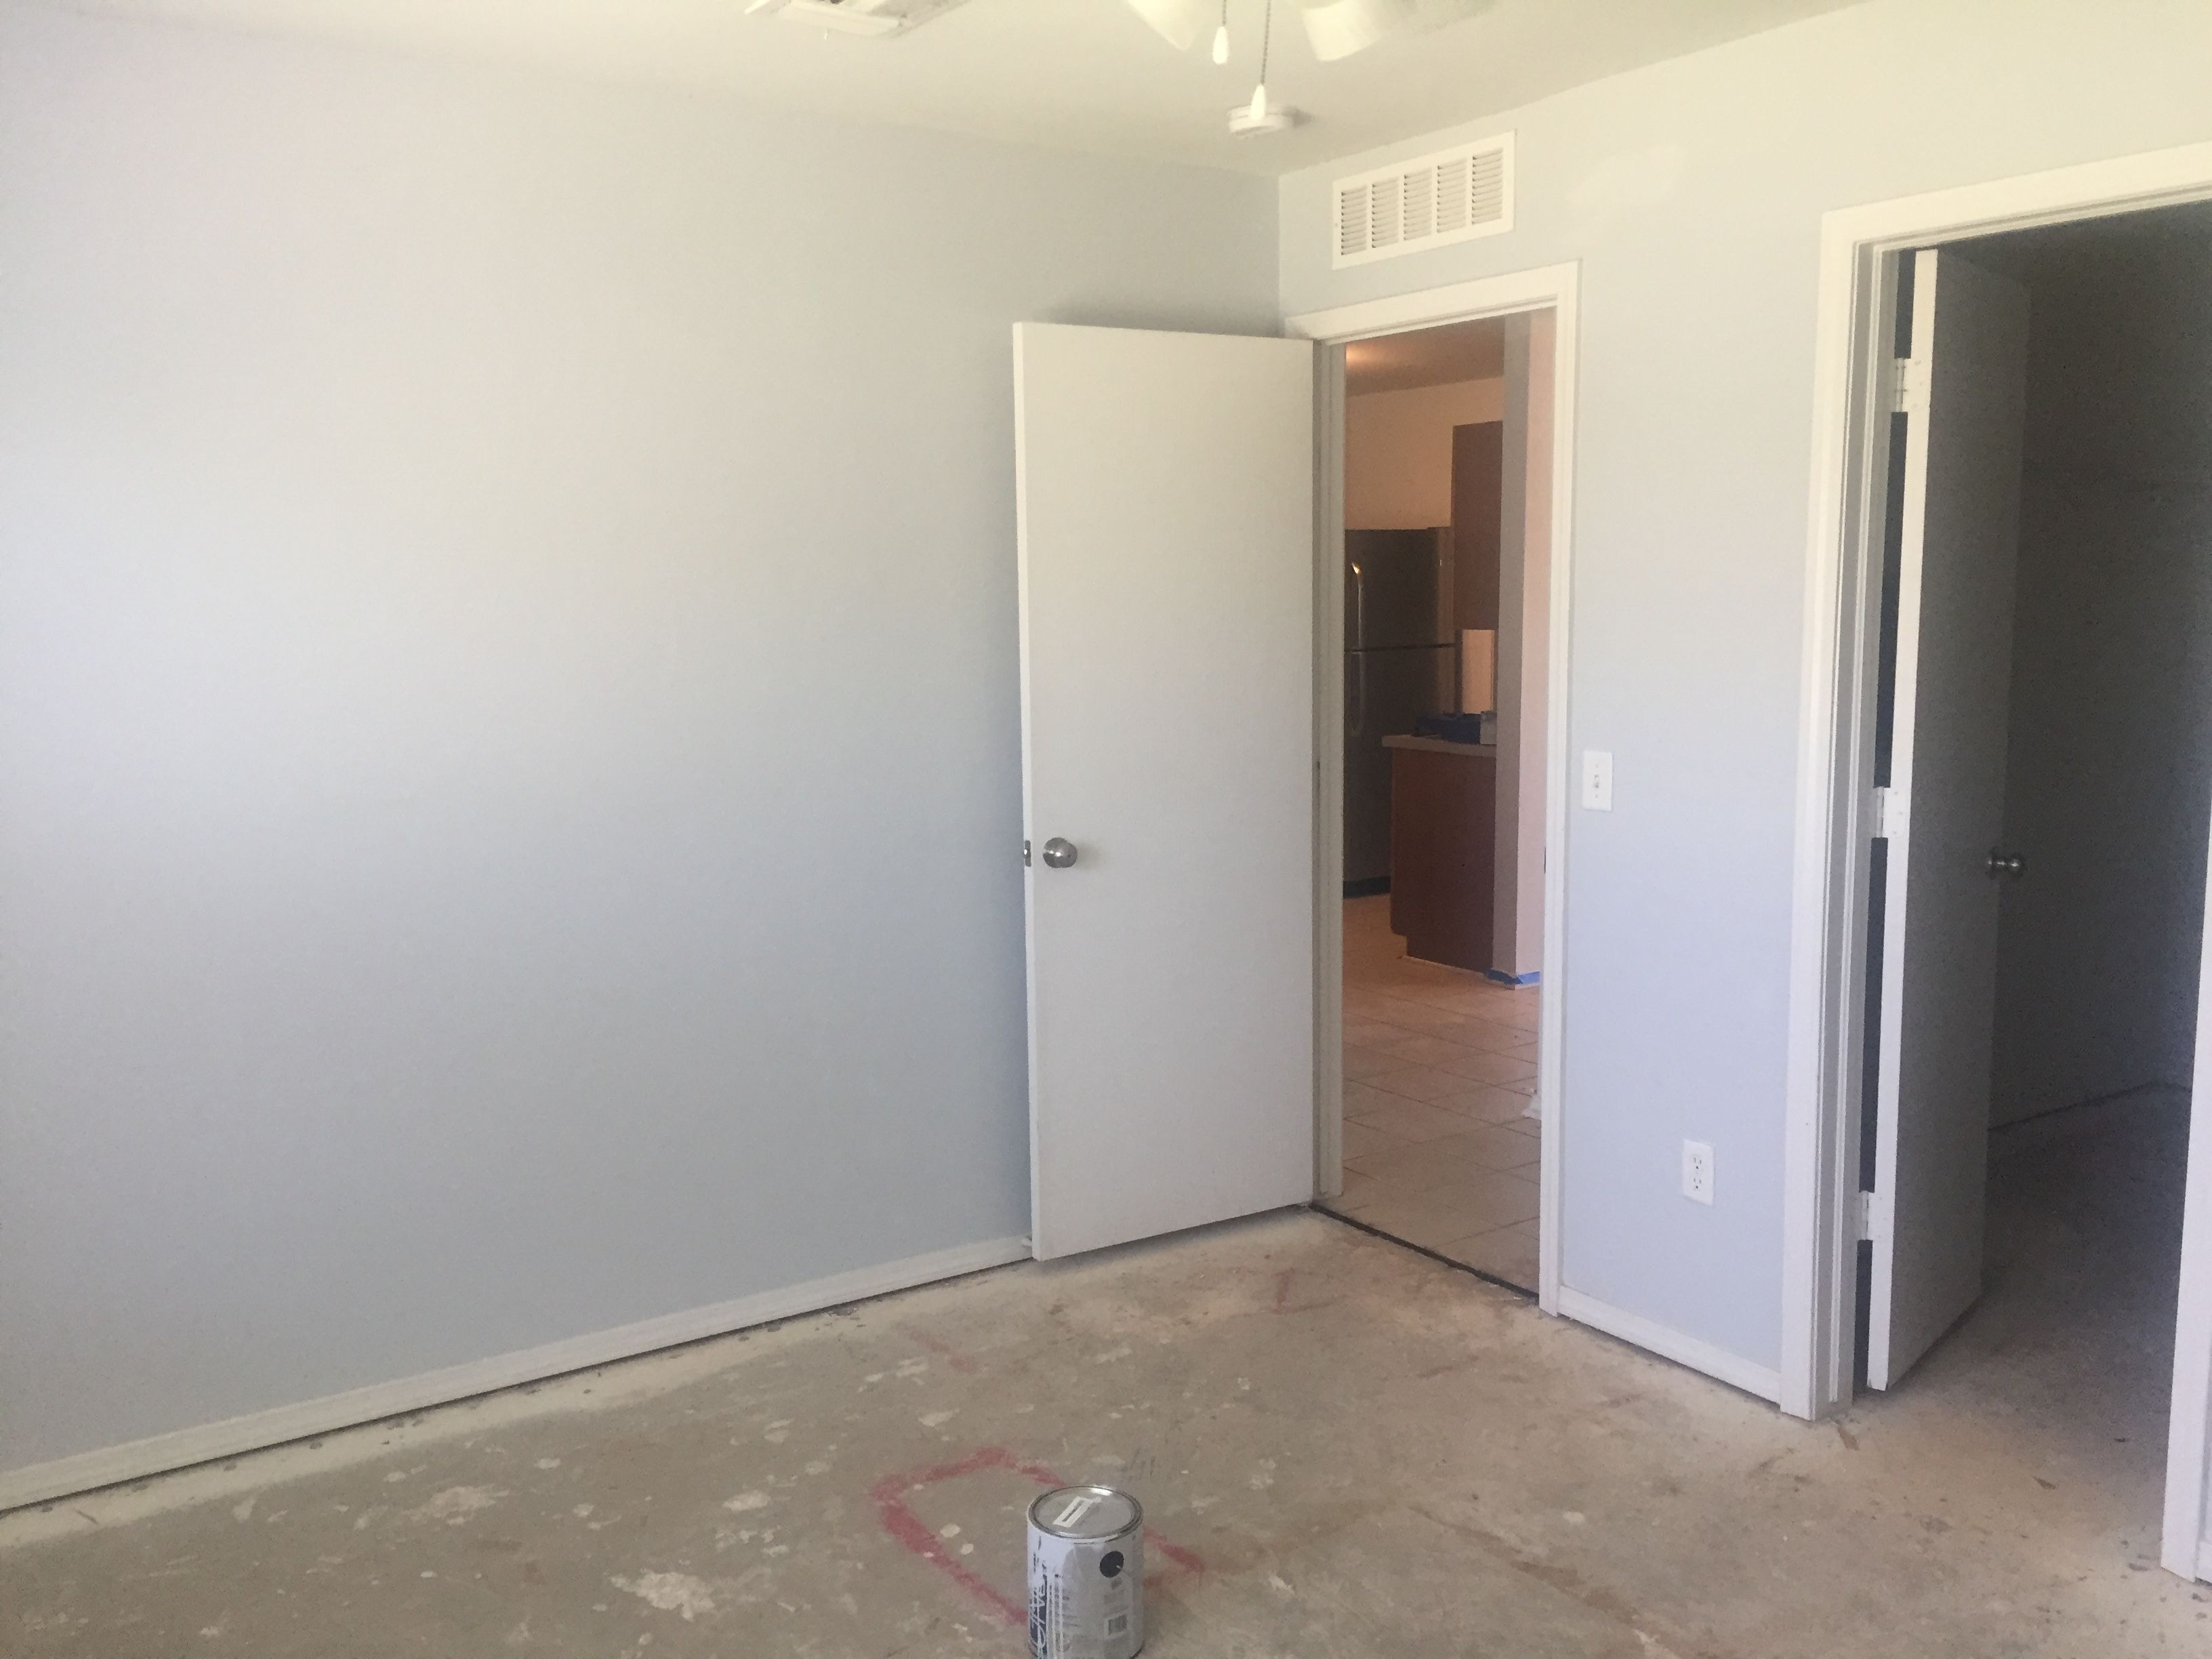 Olympic Elemental Paint A Perfect Grey Light Enough Not To Darken The Room And No Blue Or Beige Tint To It Living Room Paint House Styles Olympic Paint